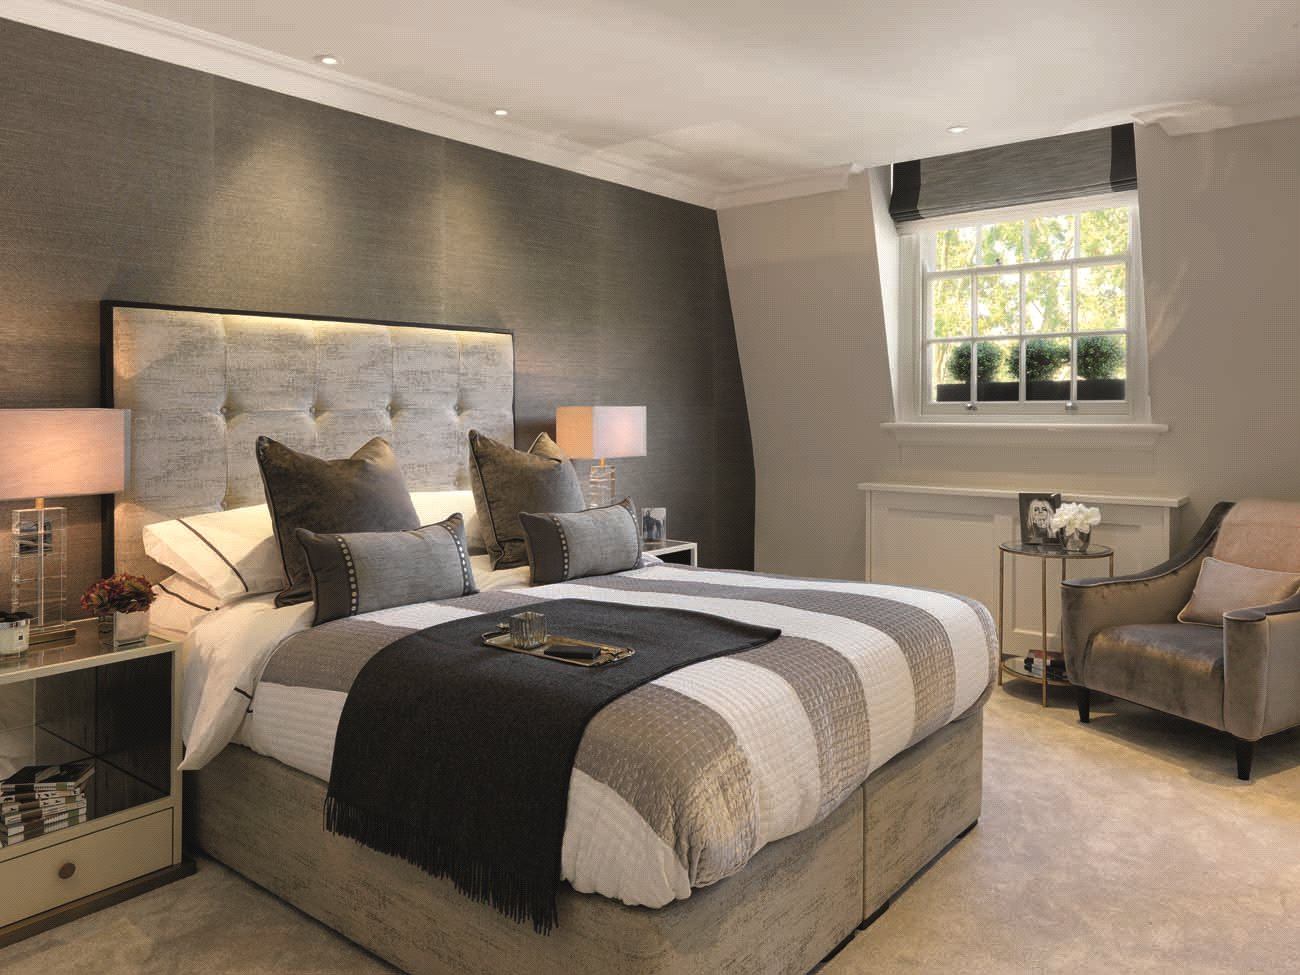 Apartments residences for sale at cork street mayfair london w1s - Vista Alegre Luxury Real Estate For Sale Christie S International Real Estate